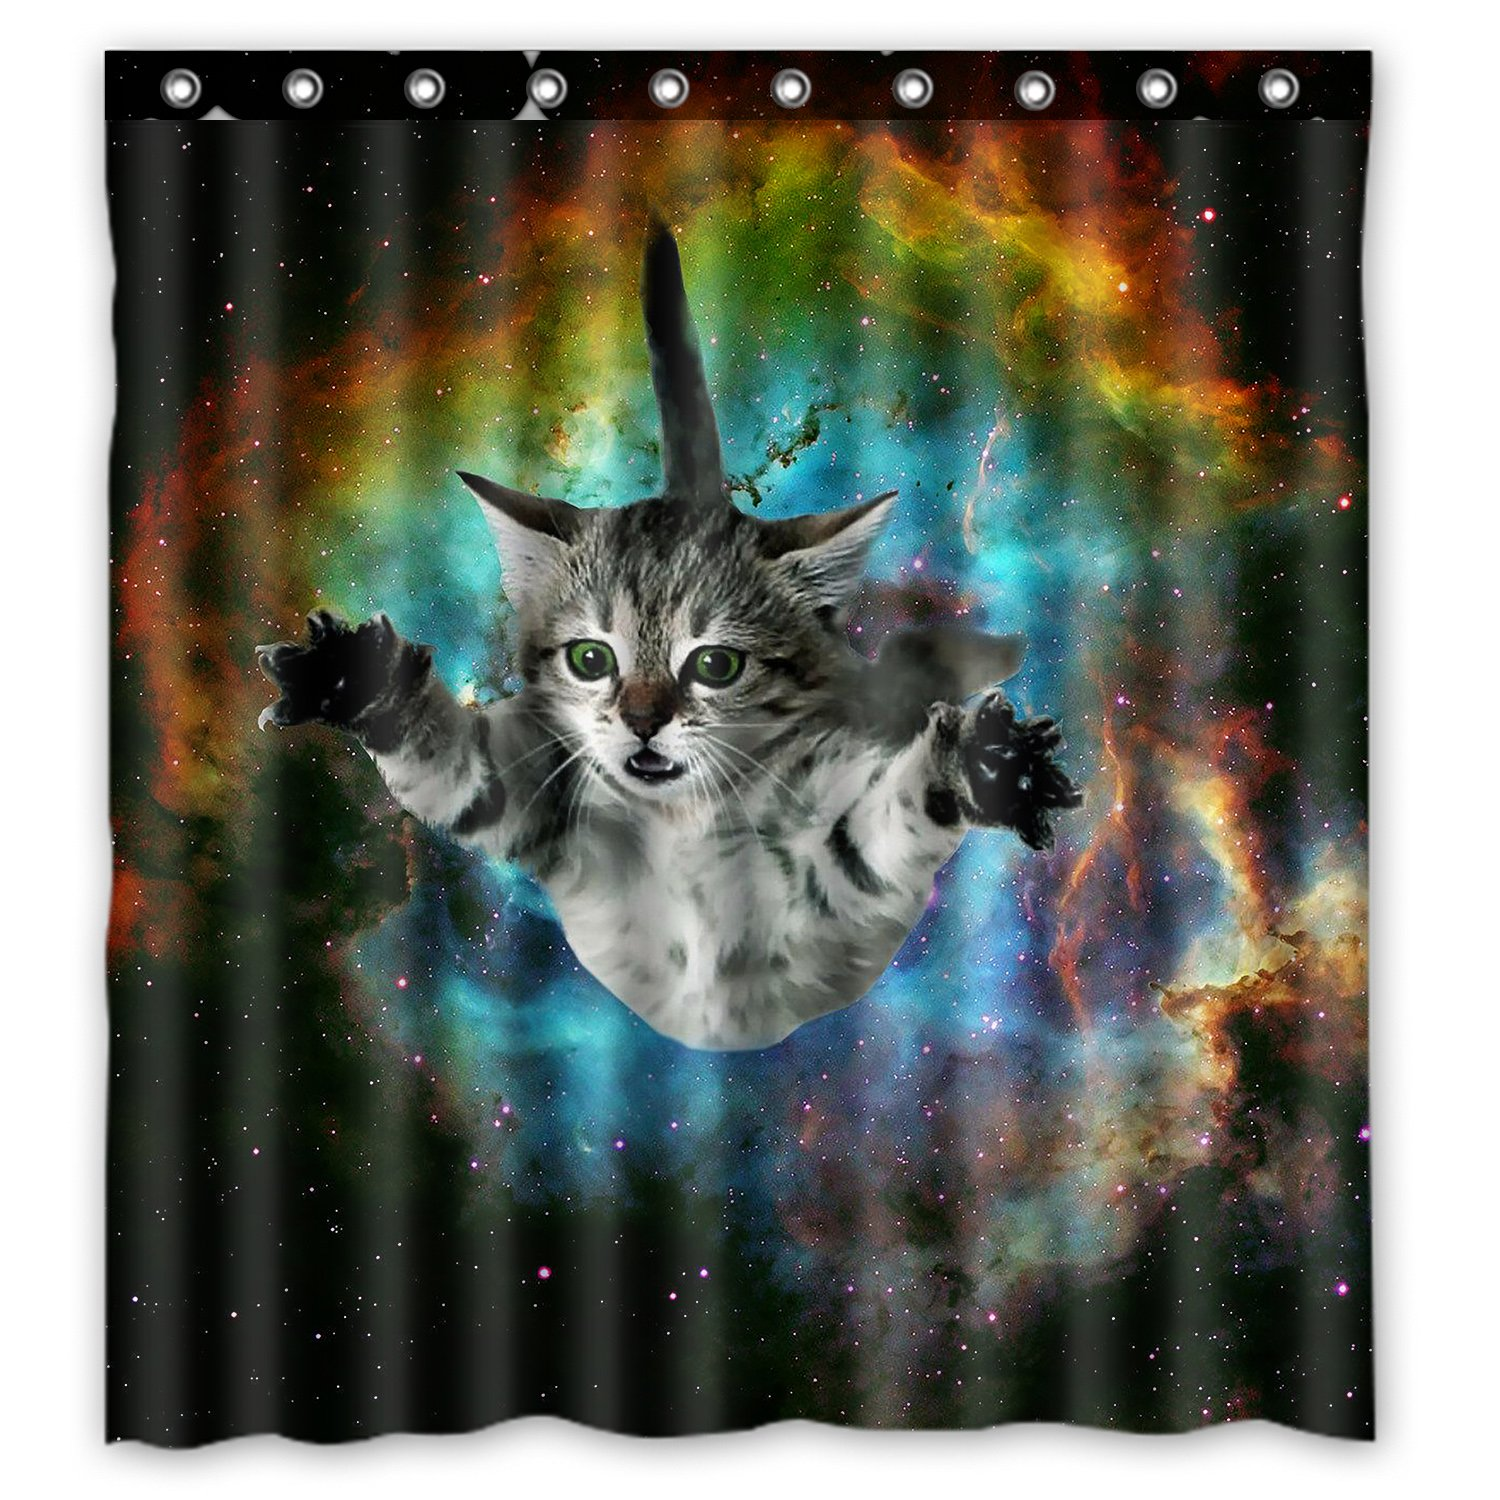 Space Cat Water-Proof Polyester Fabric (66 x 72 ) Shower Curtain Space Cat Shower Curtain COMIN16JU043624